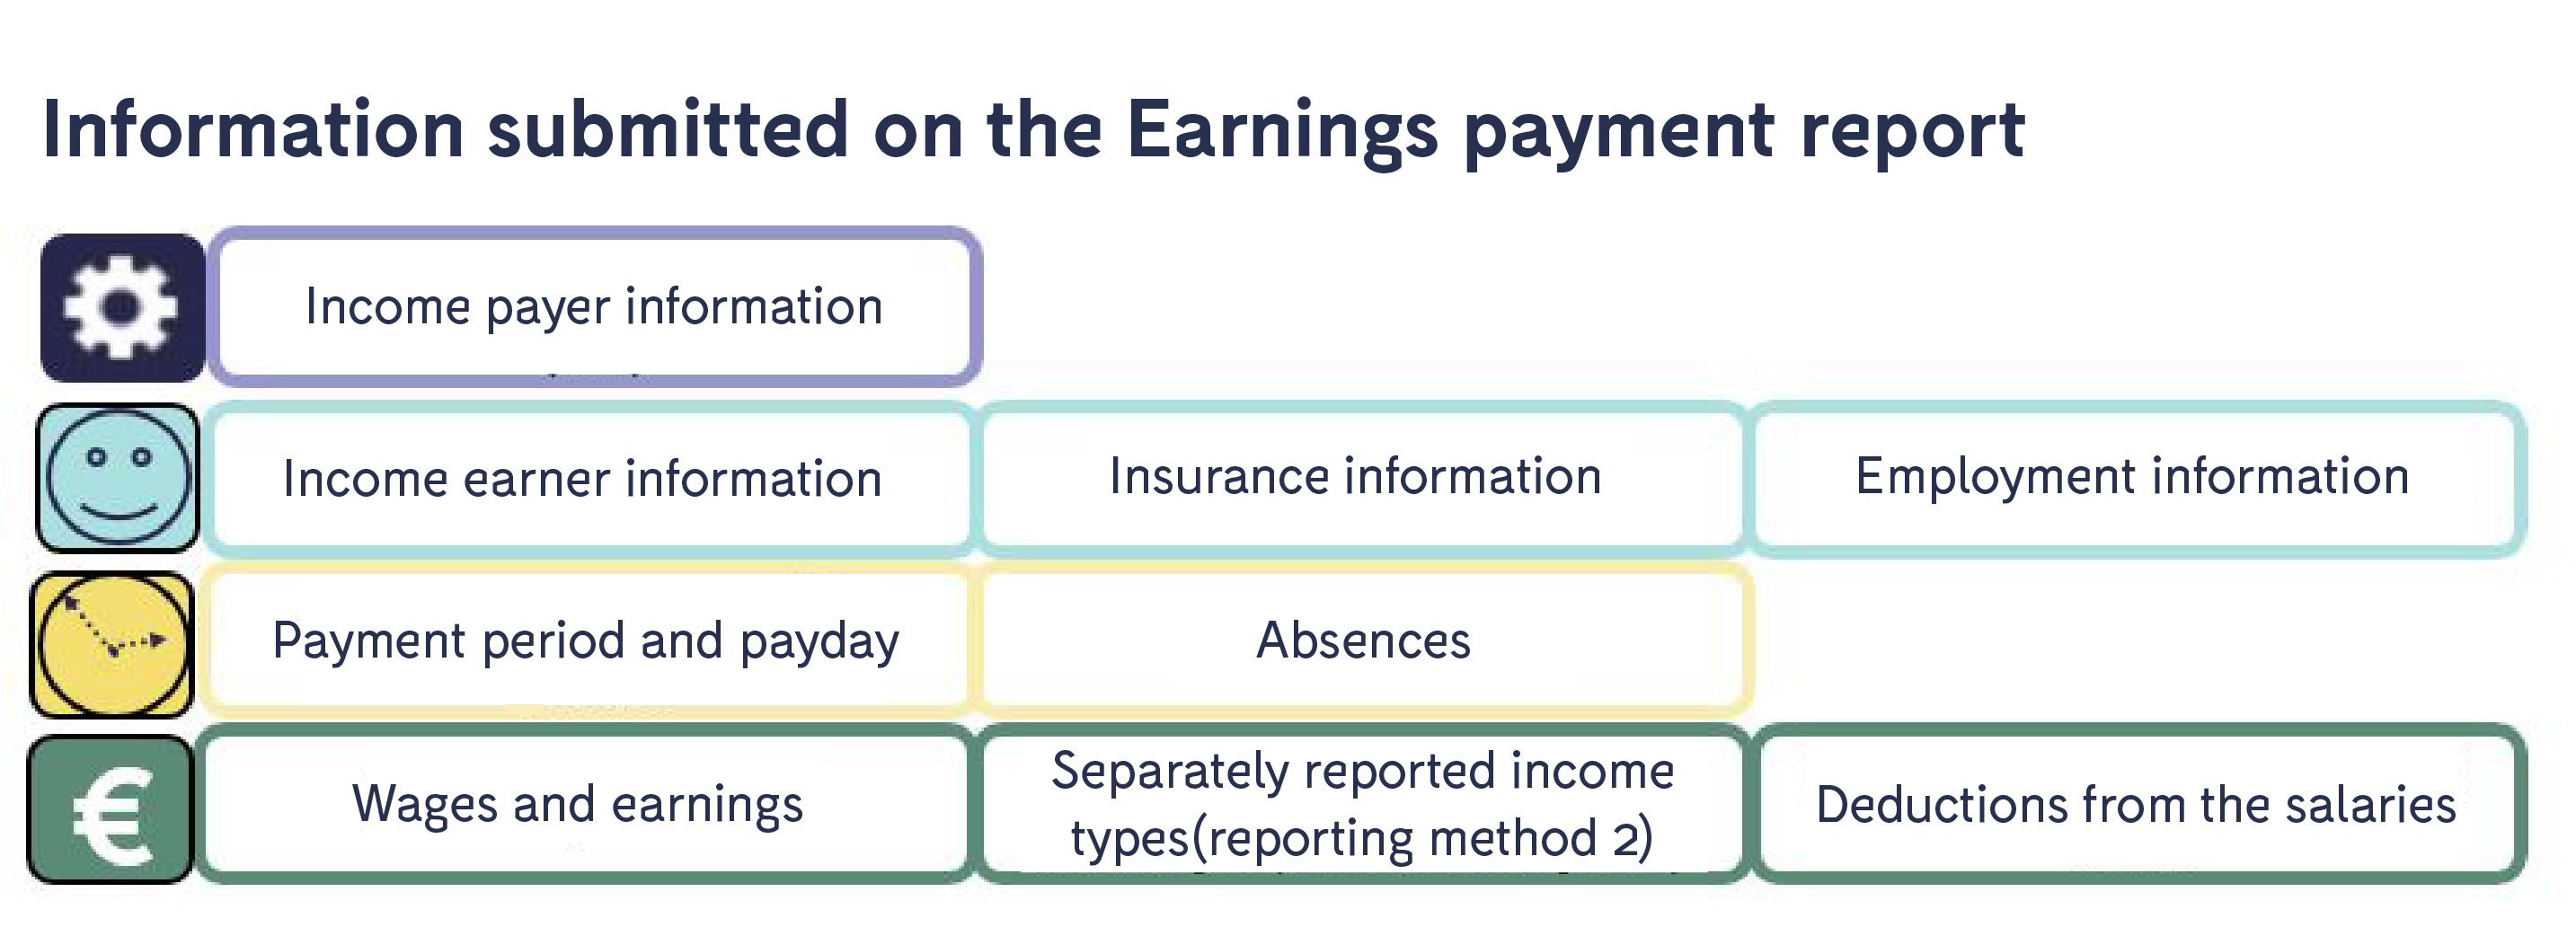 Information_submitted_on_the_Earnings_payment_report.png